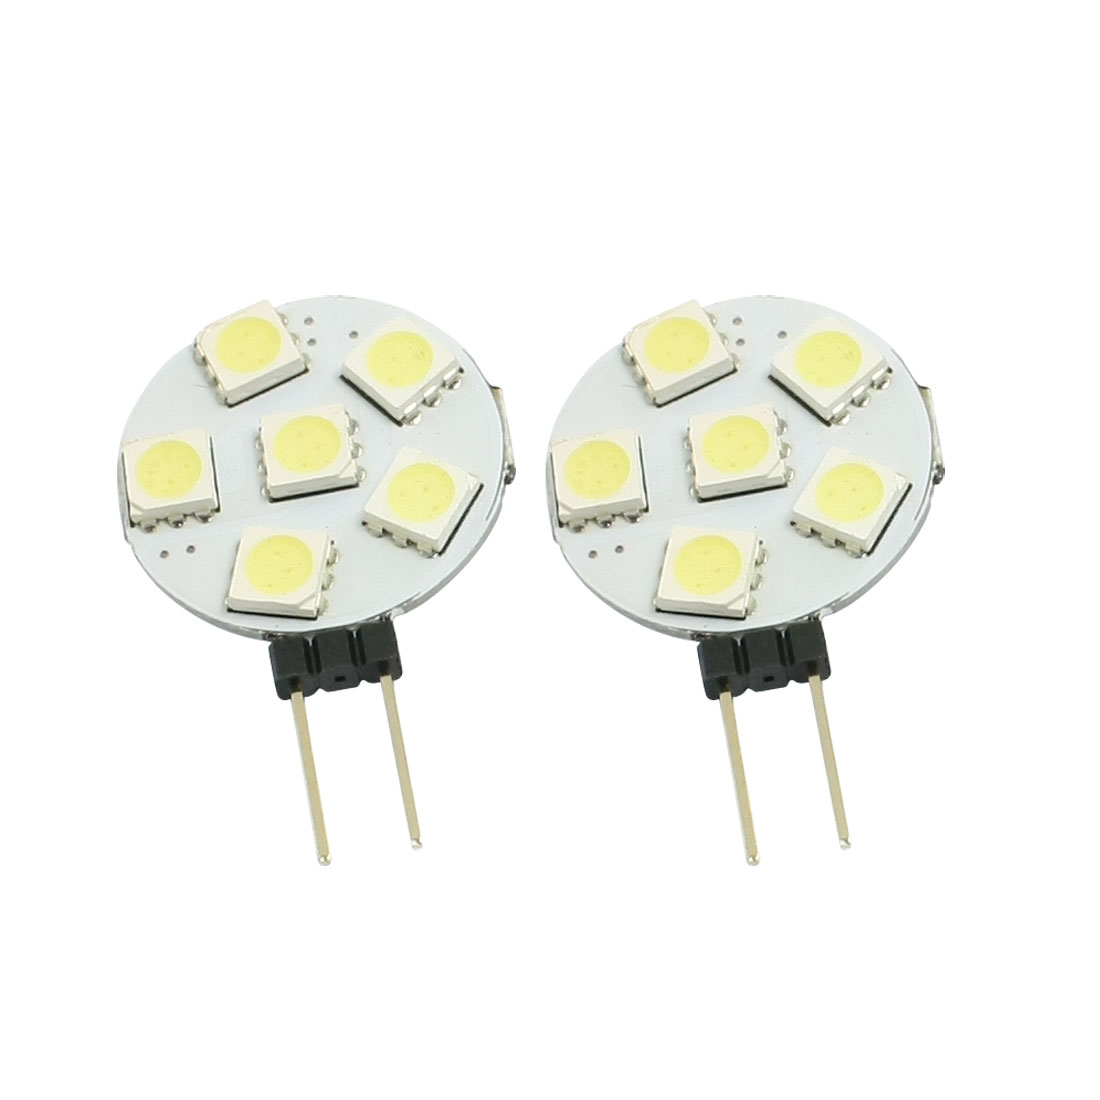 2 Pcs Side Pin G4 White 5050 SMD 6-LED Bulb Light Dashboard Lamp